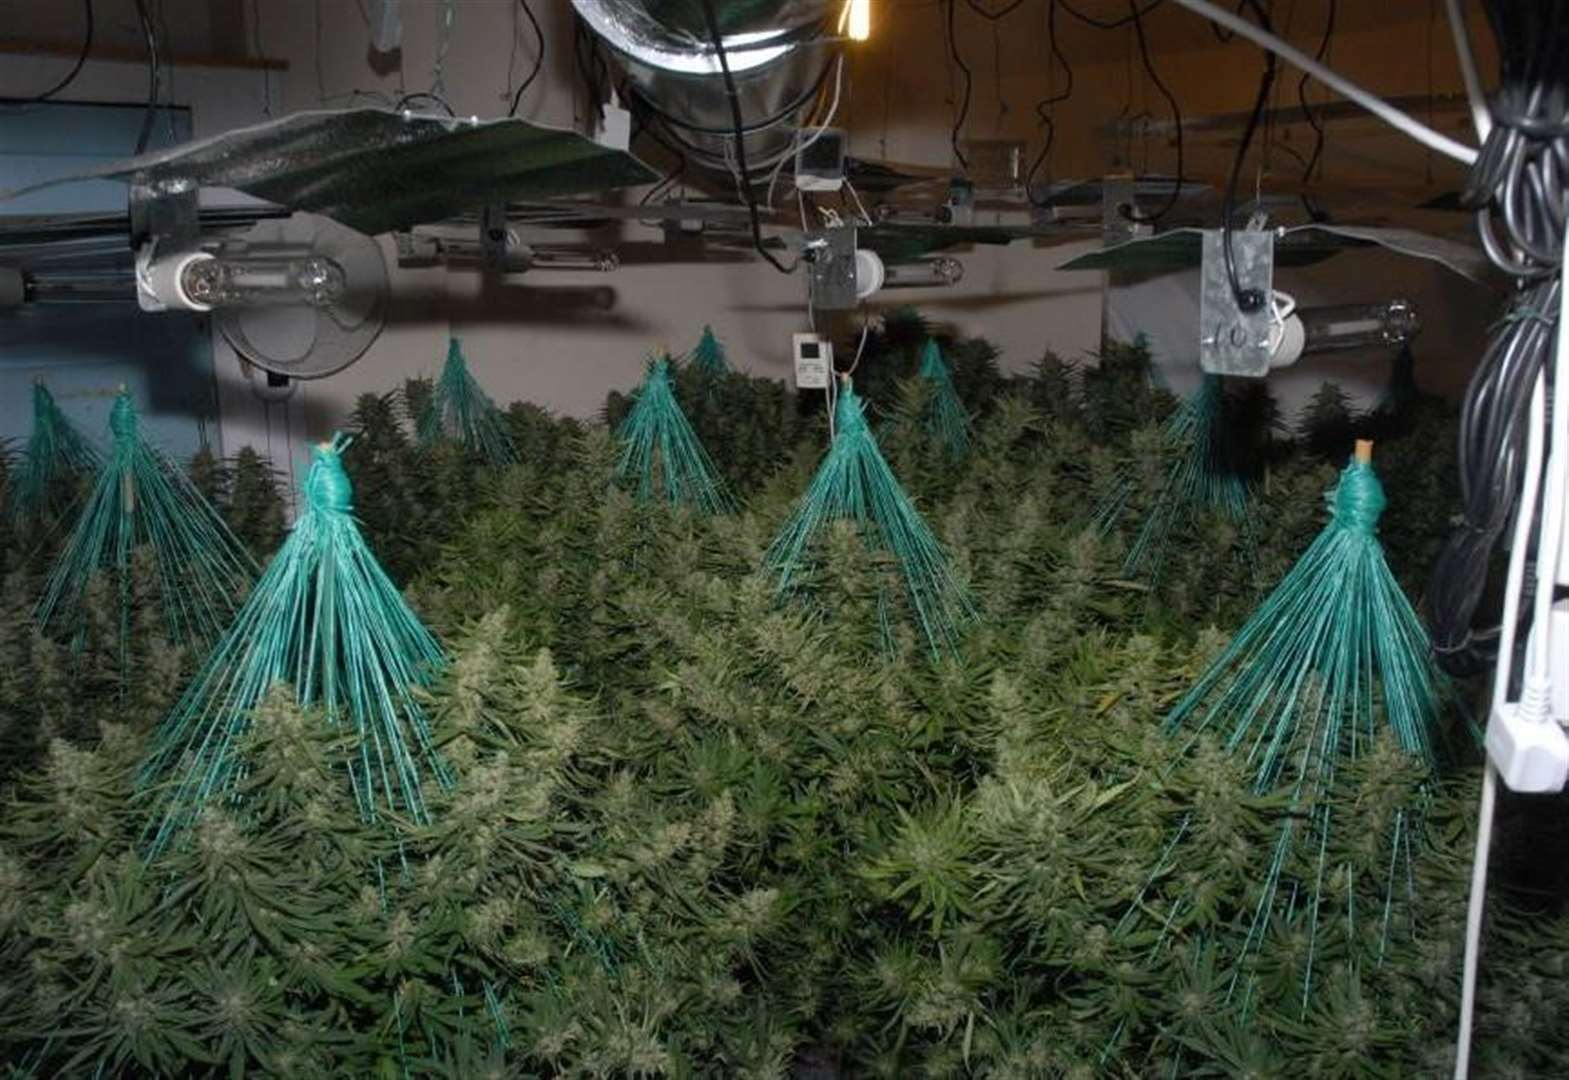 Pair jailed for cannabis factory